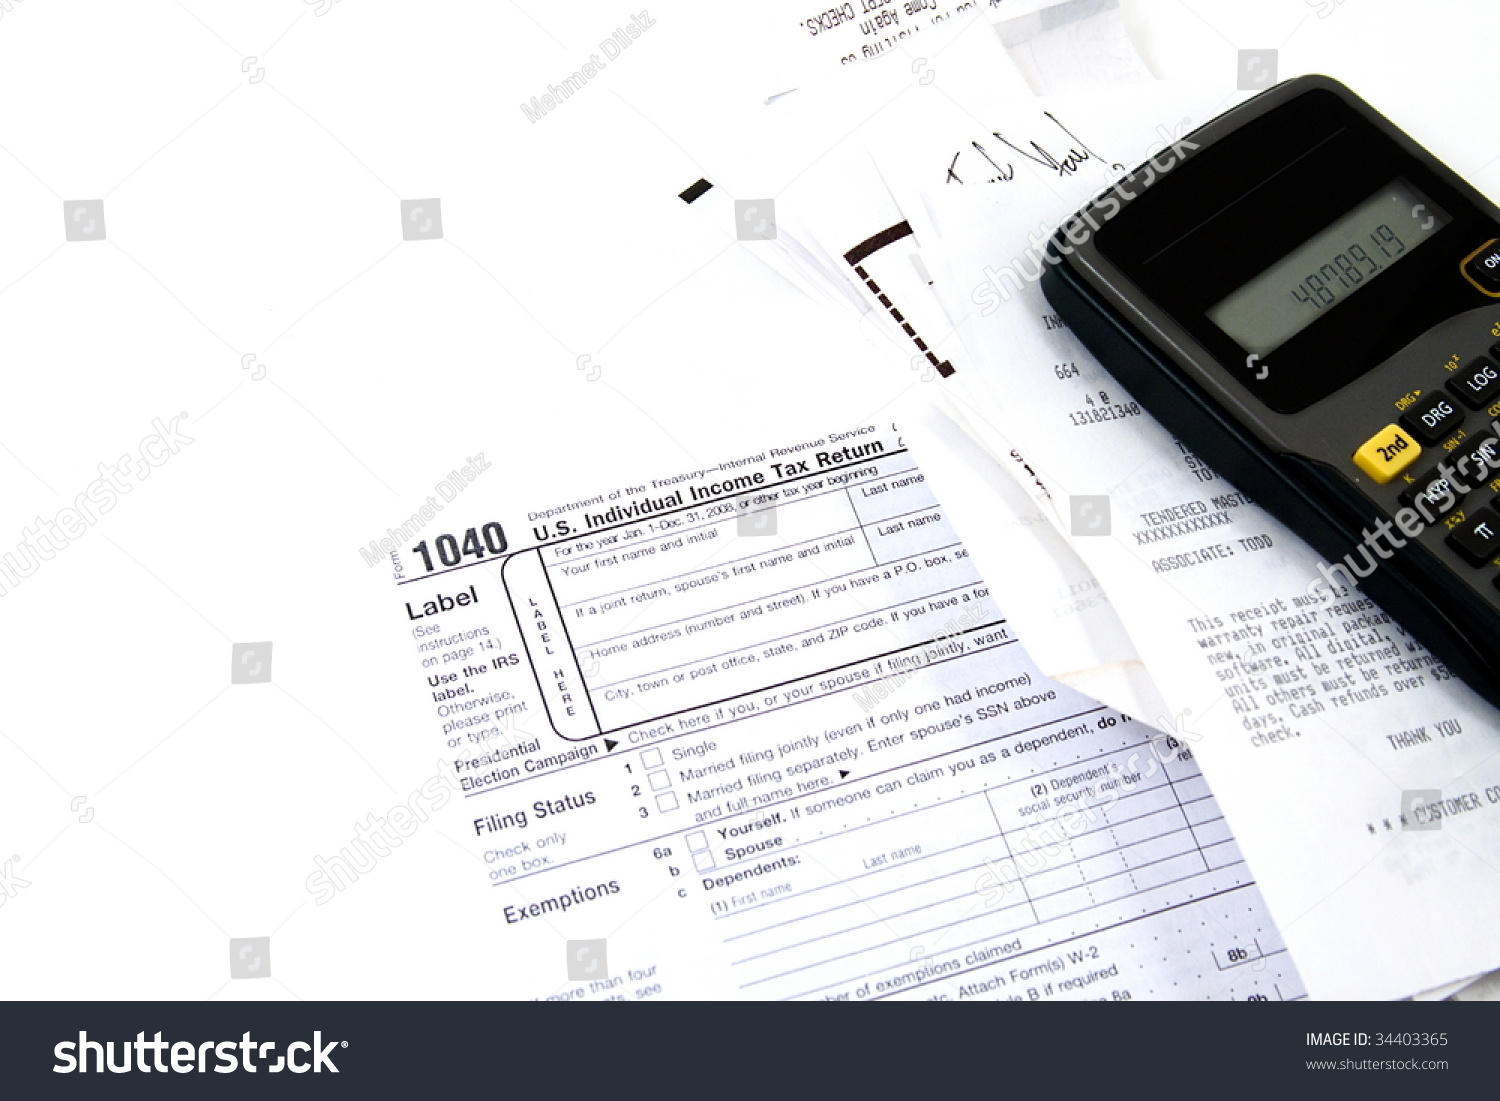 Preparing taxes form 1040 2008 stock photo 34403365 shutterstock preparing taxes form 1040 for 2008 falaconquin